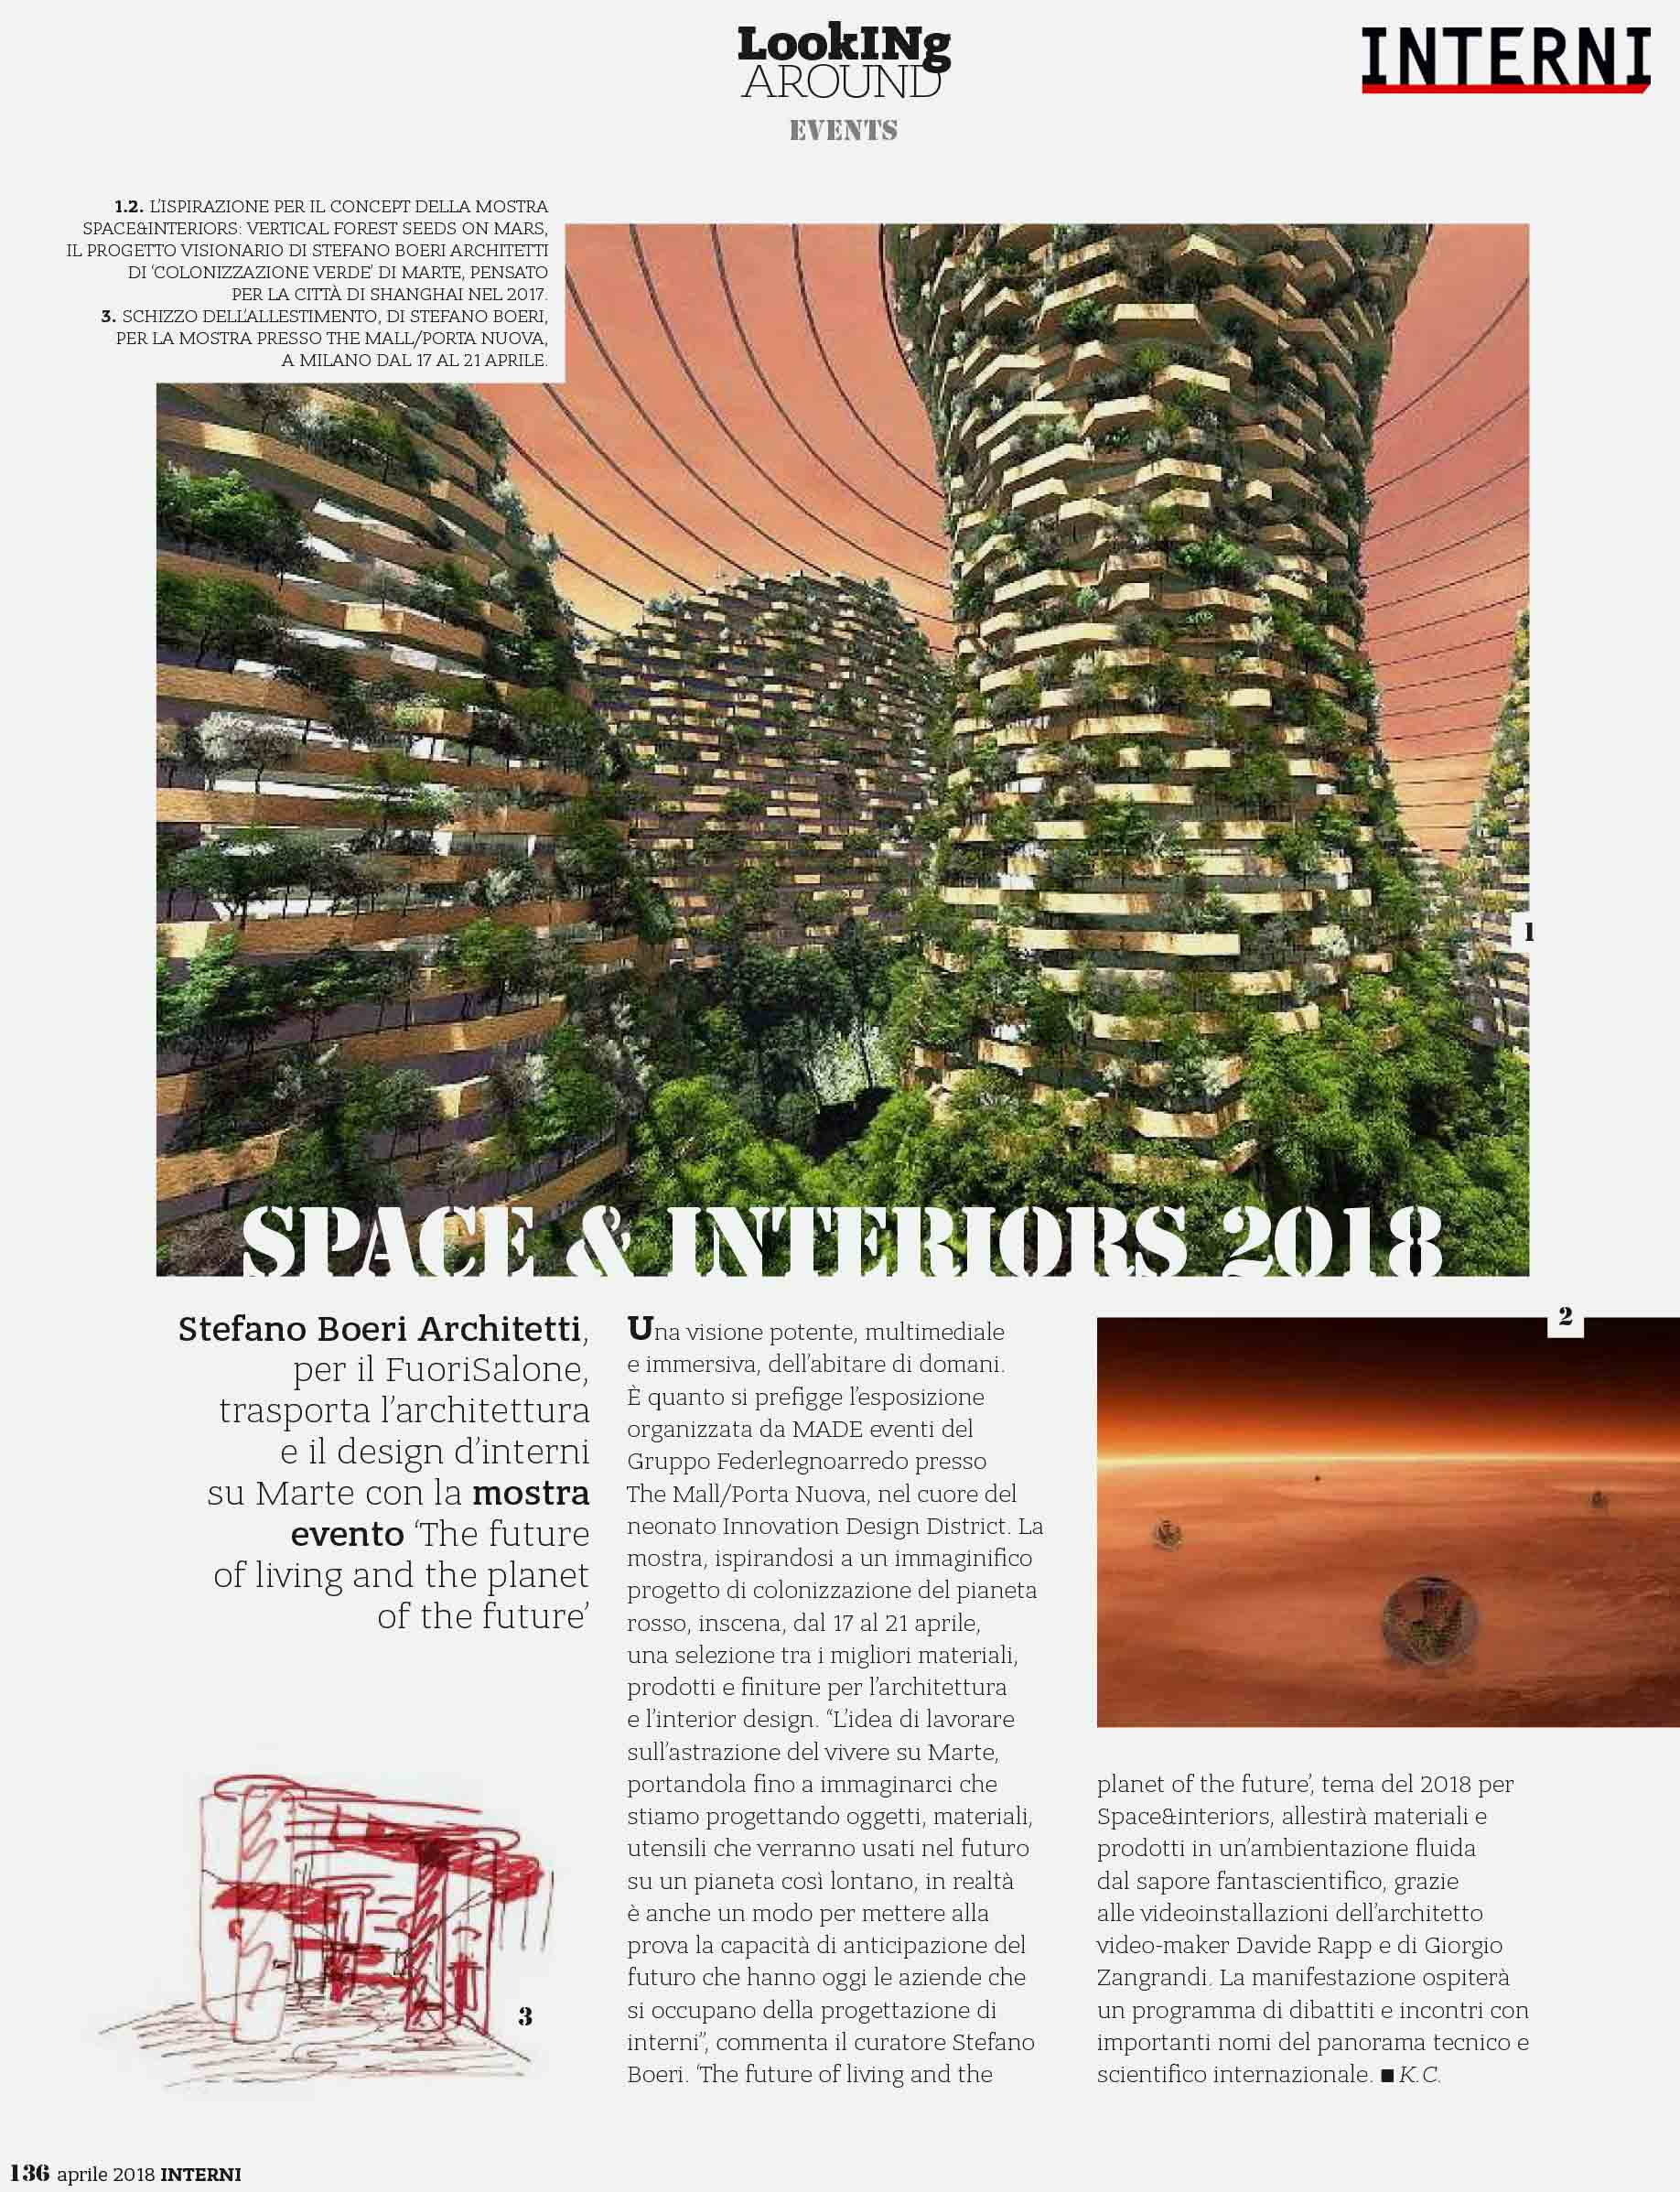 Mostra Design Milano 2018 the future of living and the planet of the future | stefano